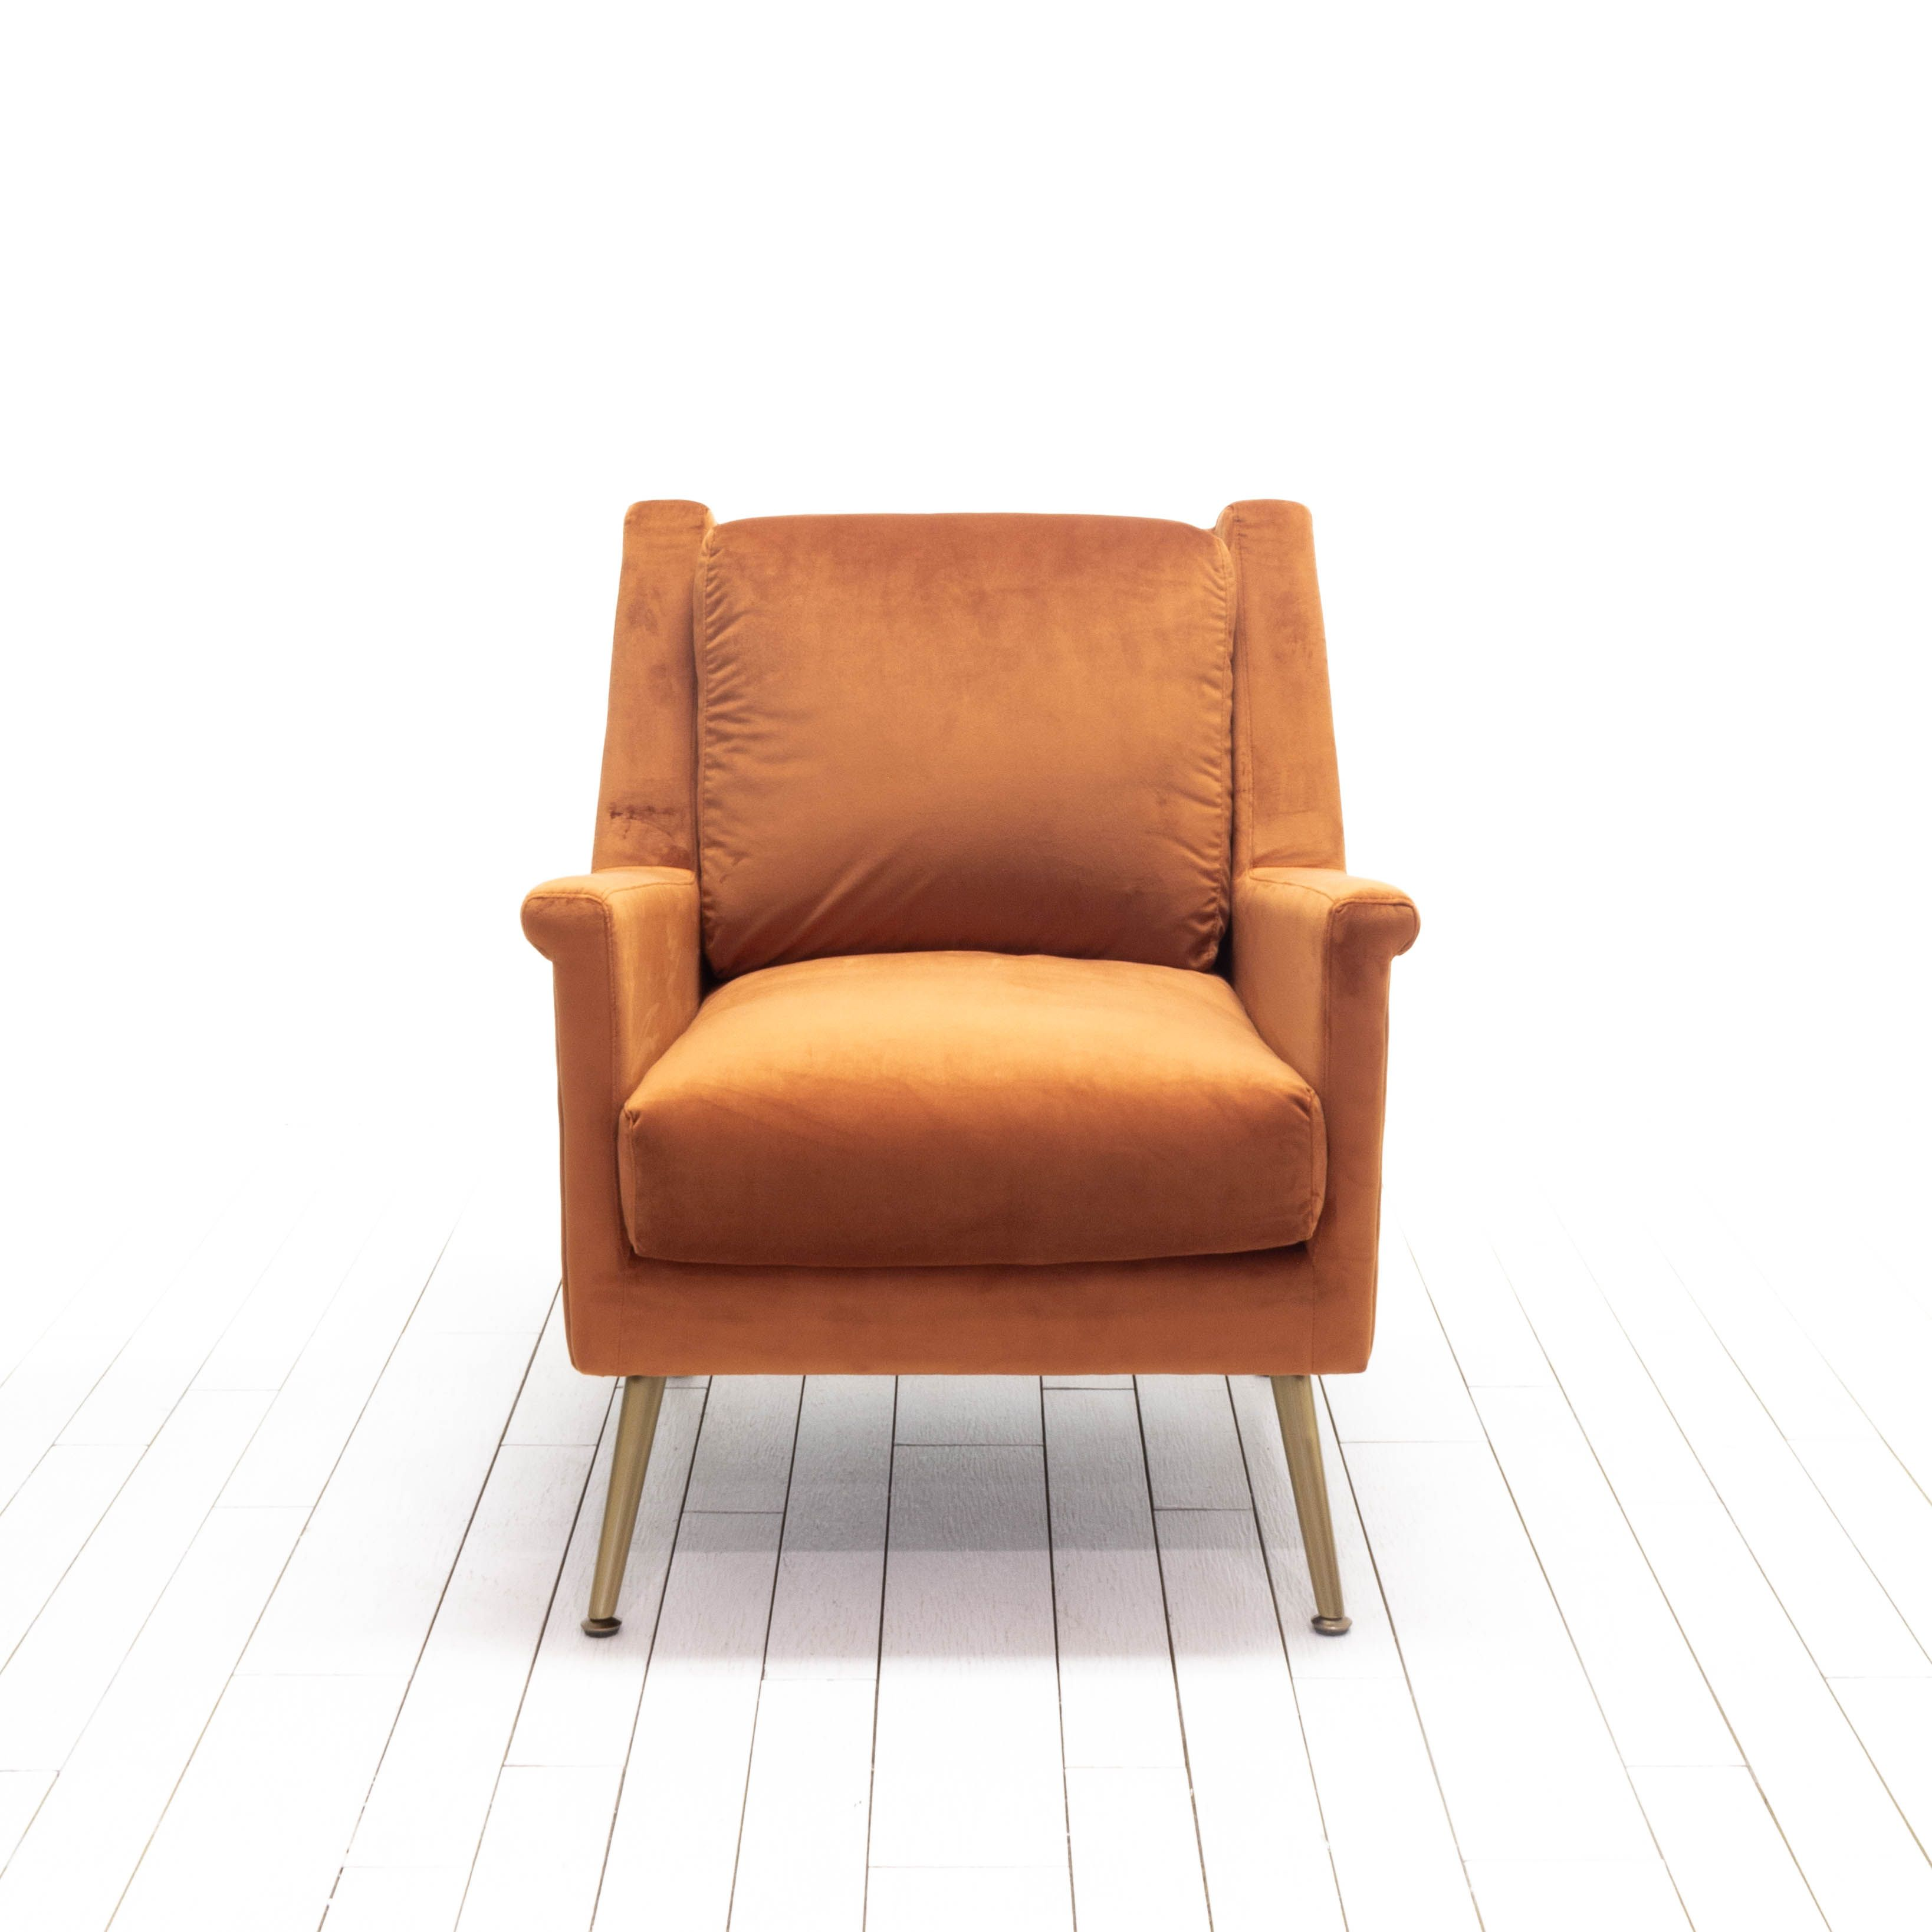 Our Collection Of Vintage And Modern Rental Furnishings Furnishings Modern Chair